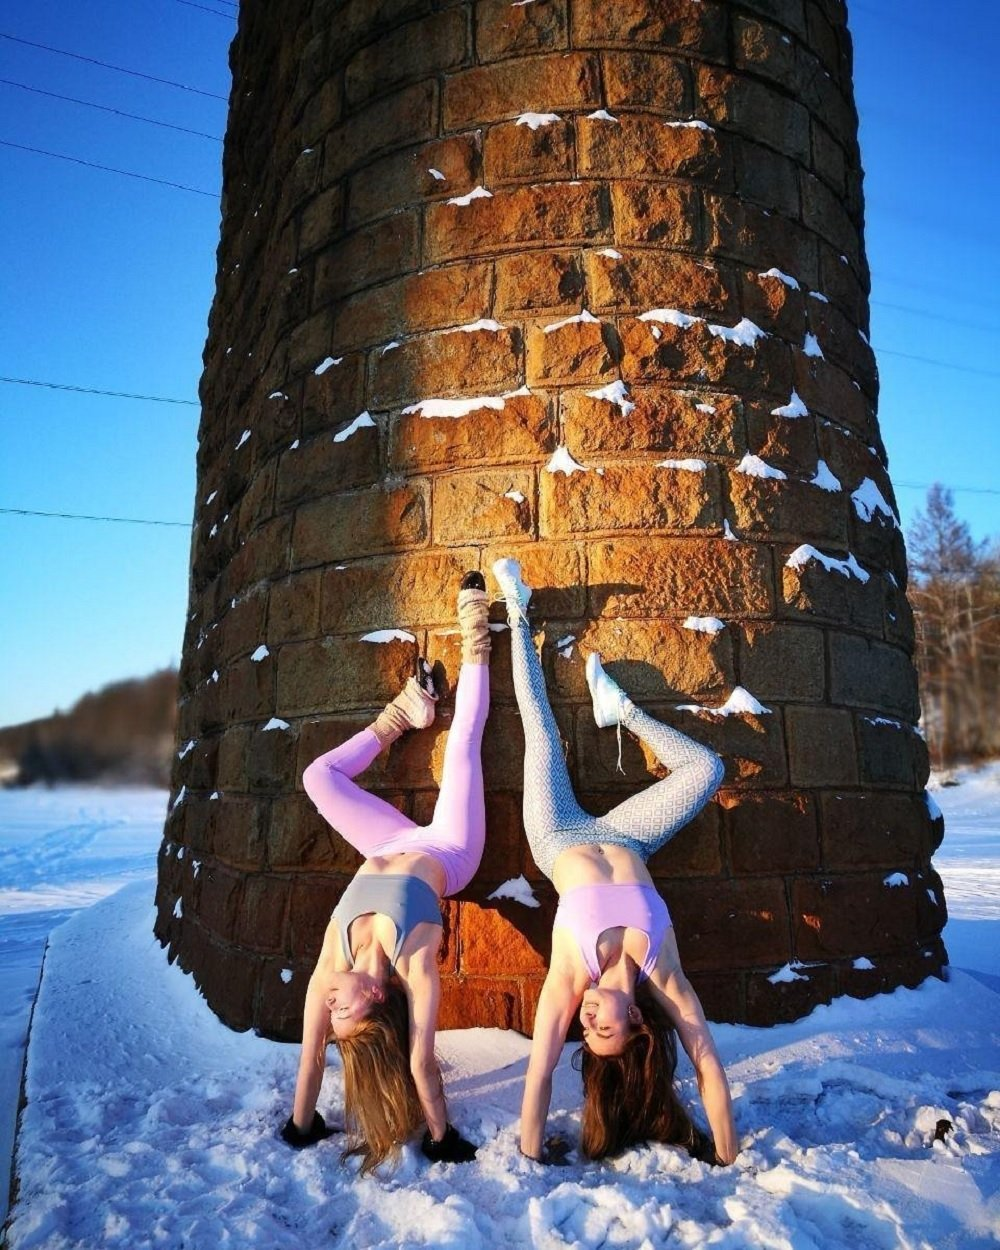 Two Siberian Girls Practice Yoga In -40 Degree Weather And Frost Photos - Sputnik -2769